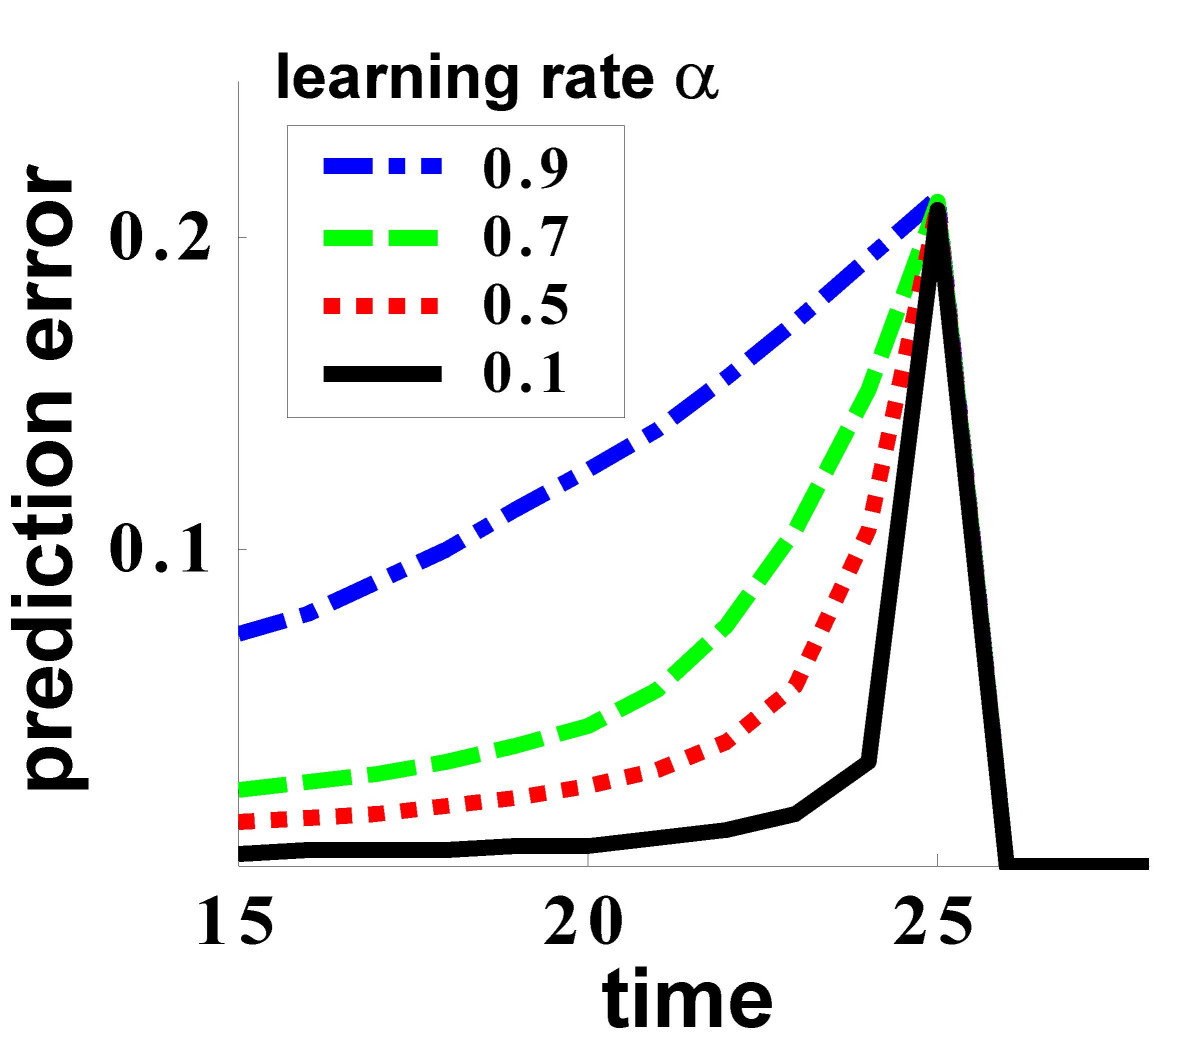 http://static-content.springer.com/image/art%3A10.1186%2F1744-9081-1-6/MediaObjects/12993_2005_Article_6_Fig4_HTML.jpg